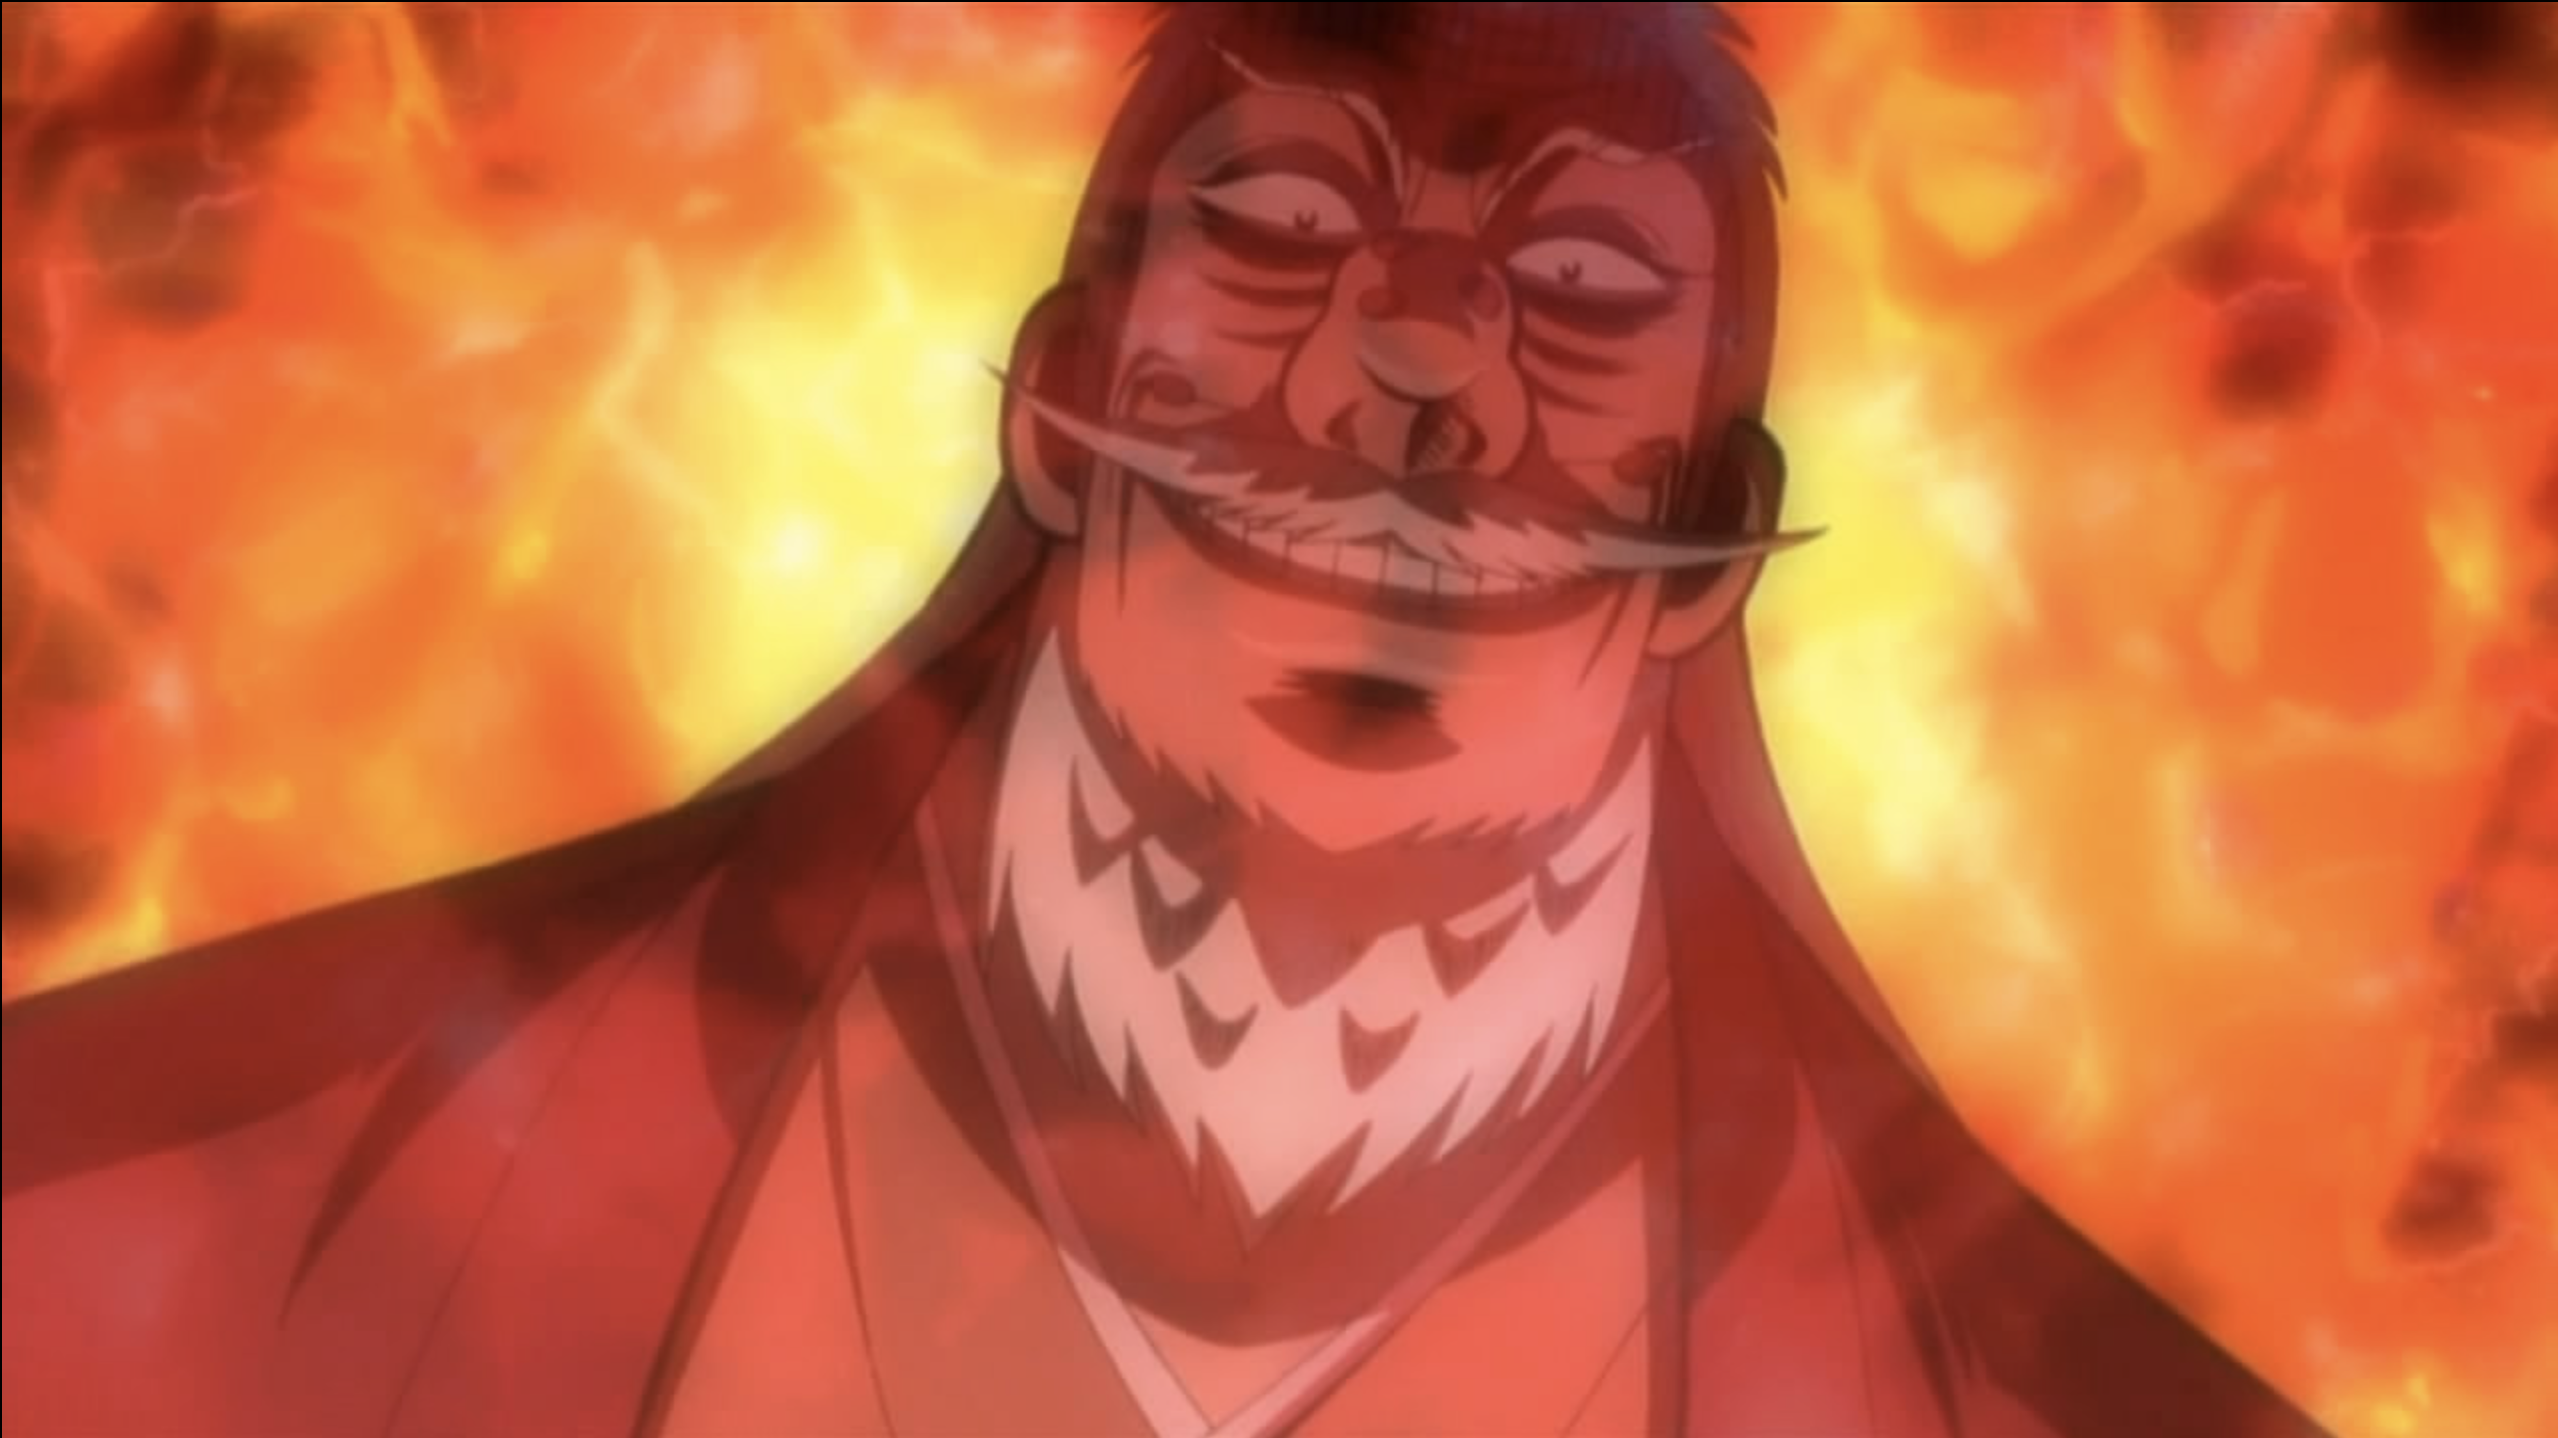 Hyōdō grinning sinisterly, depicted with fire around him.